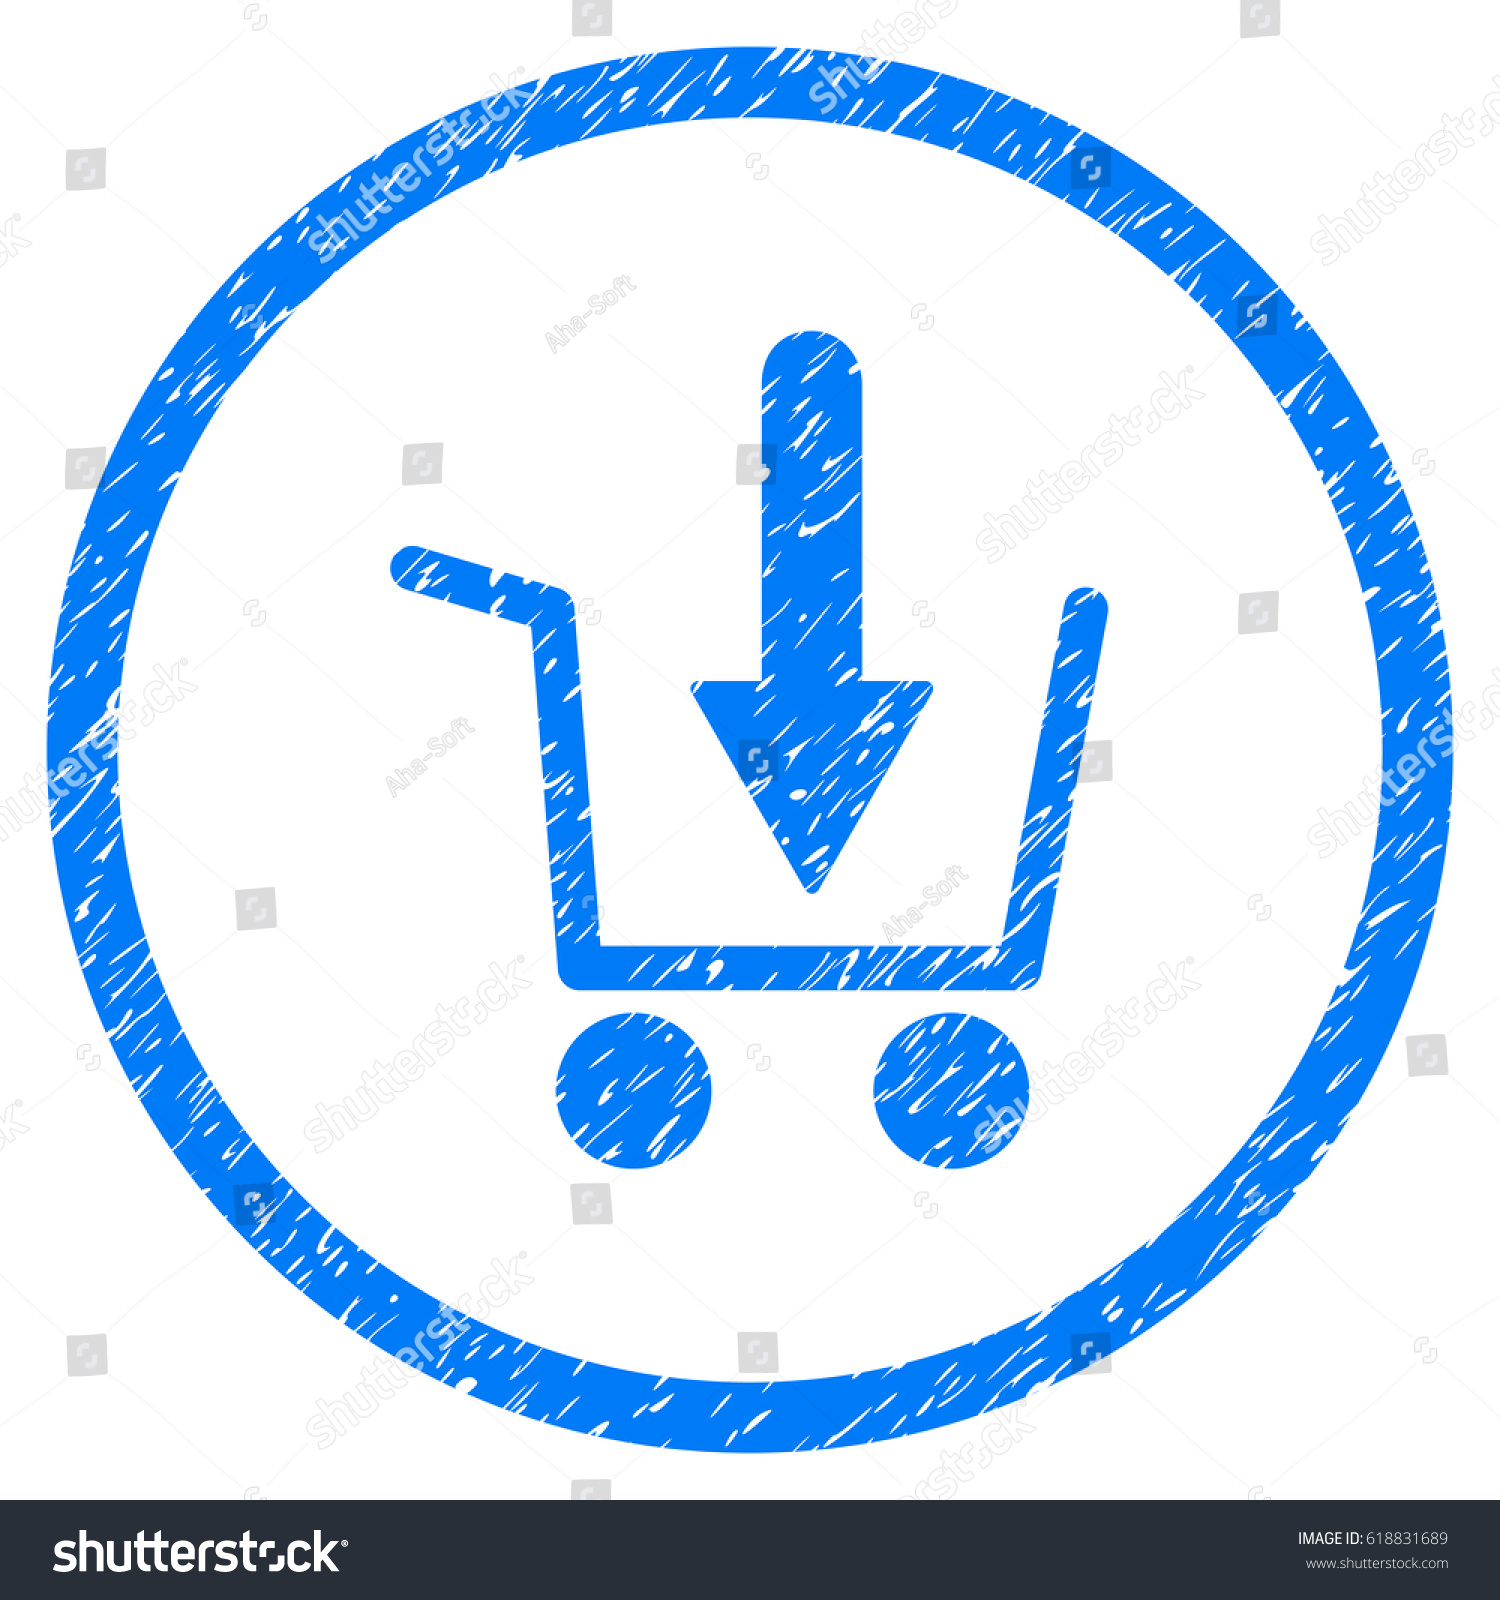 Add basket grainy textured icon inside stock vector 618831689 add basket grainy textured icon inside stock vector 618831689 shutterstock buycottarizona